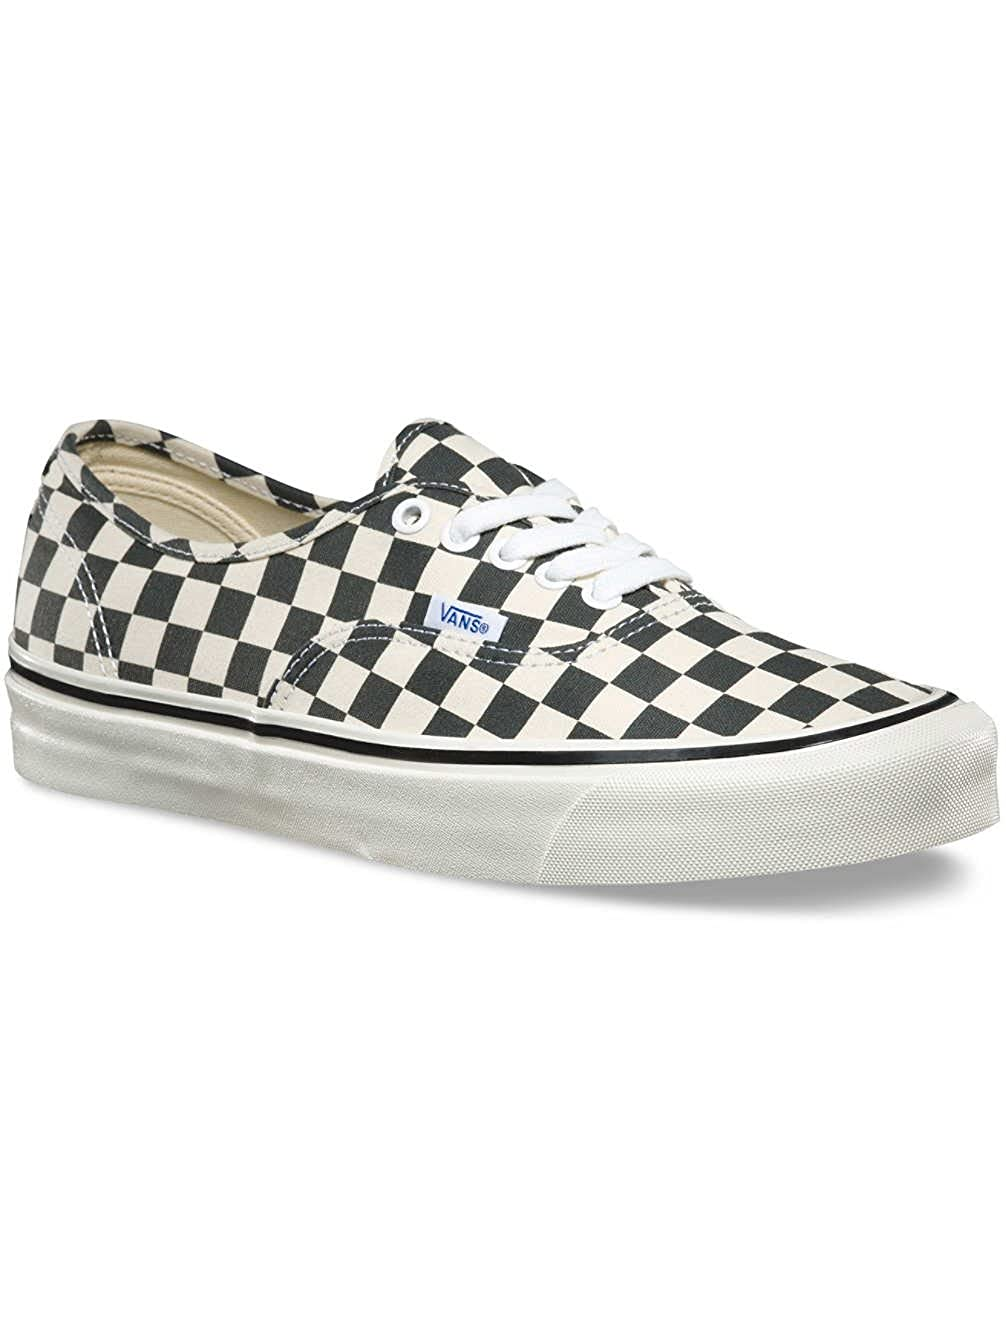 5ccce90a526 Vans Authentic 44 DX (Anaheim Factory) Sneakers Black Check Size 4 Men 5.5  Women  Buy Online at Low Prices in India - Amazon.in